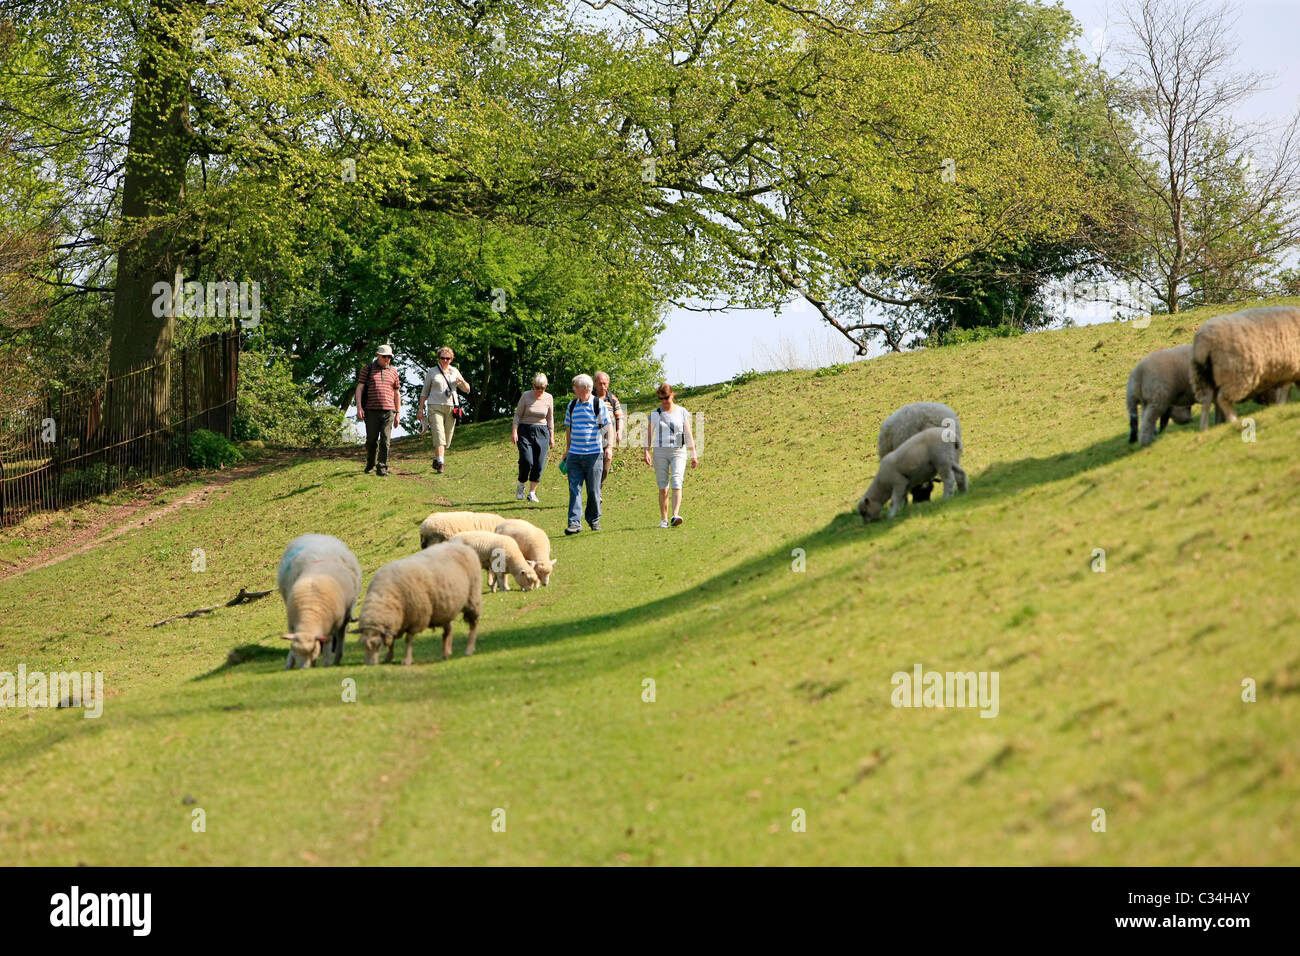 Tourists on a walking holiday follow the public path through a field of sheep - Stock Image